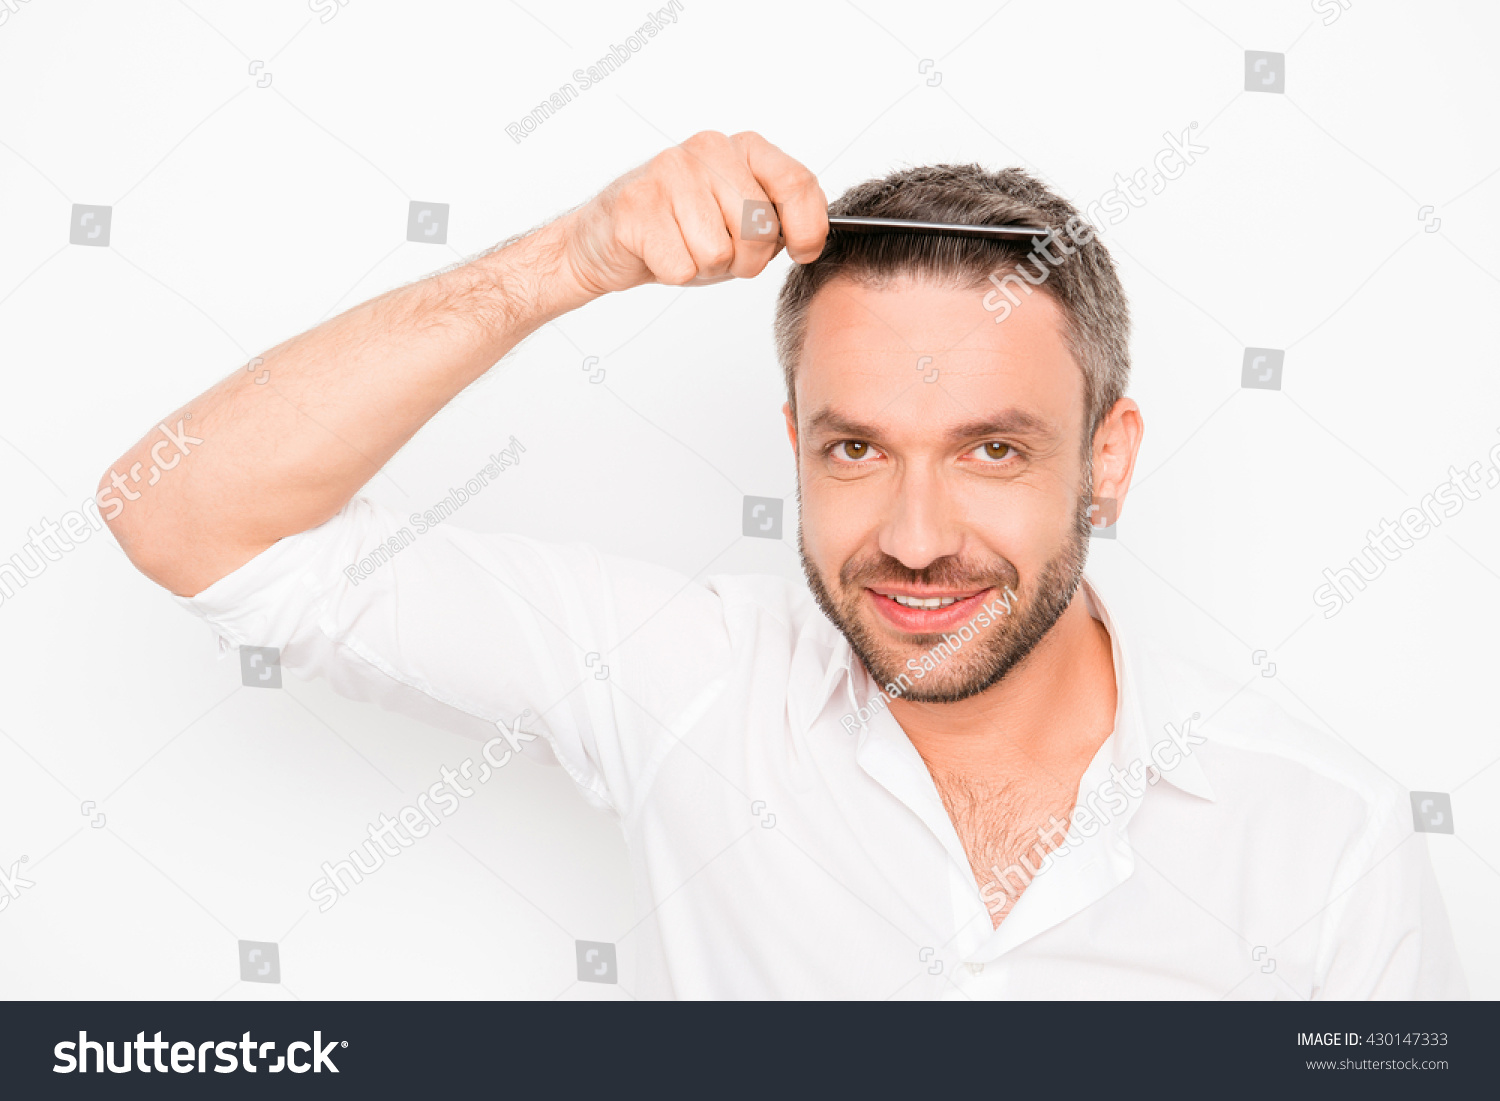 Attractive man combing his hair on white background